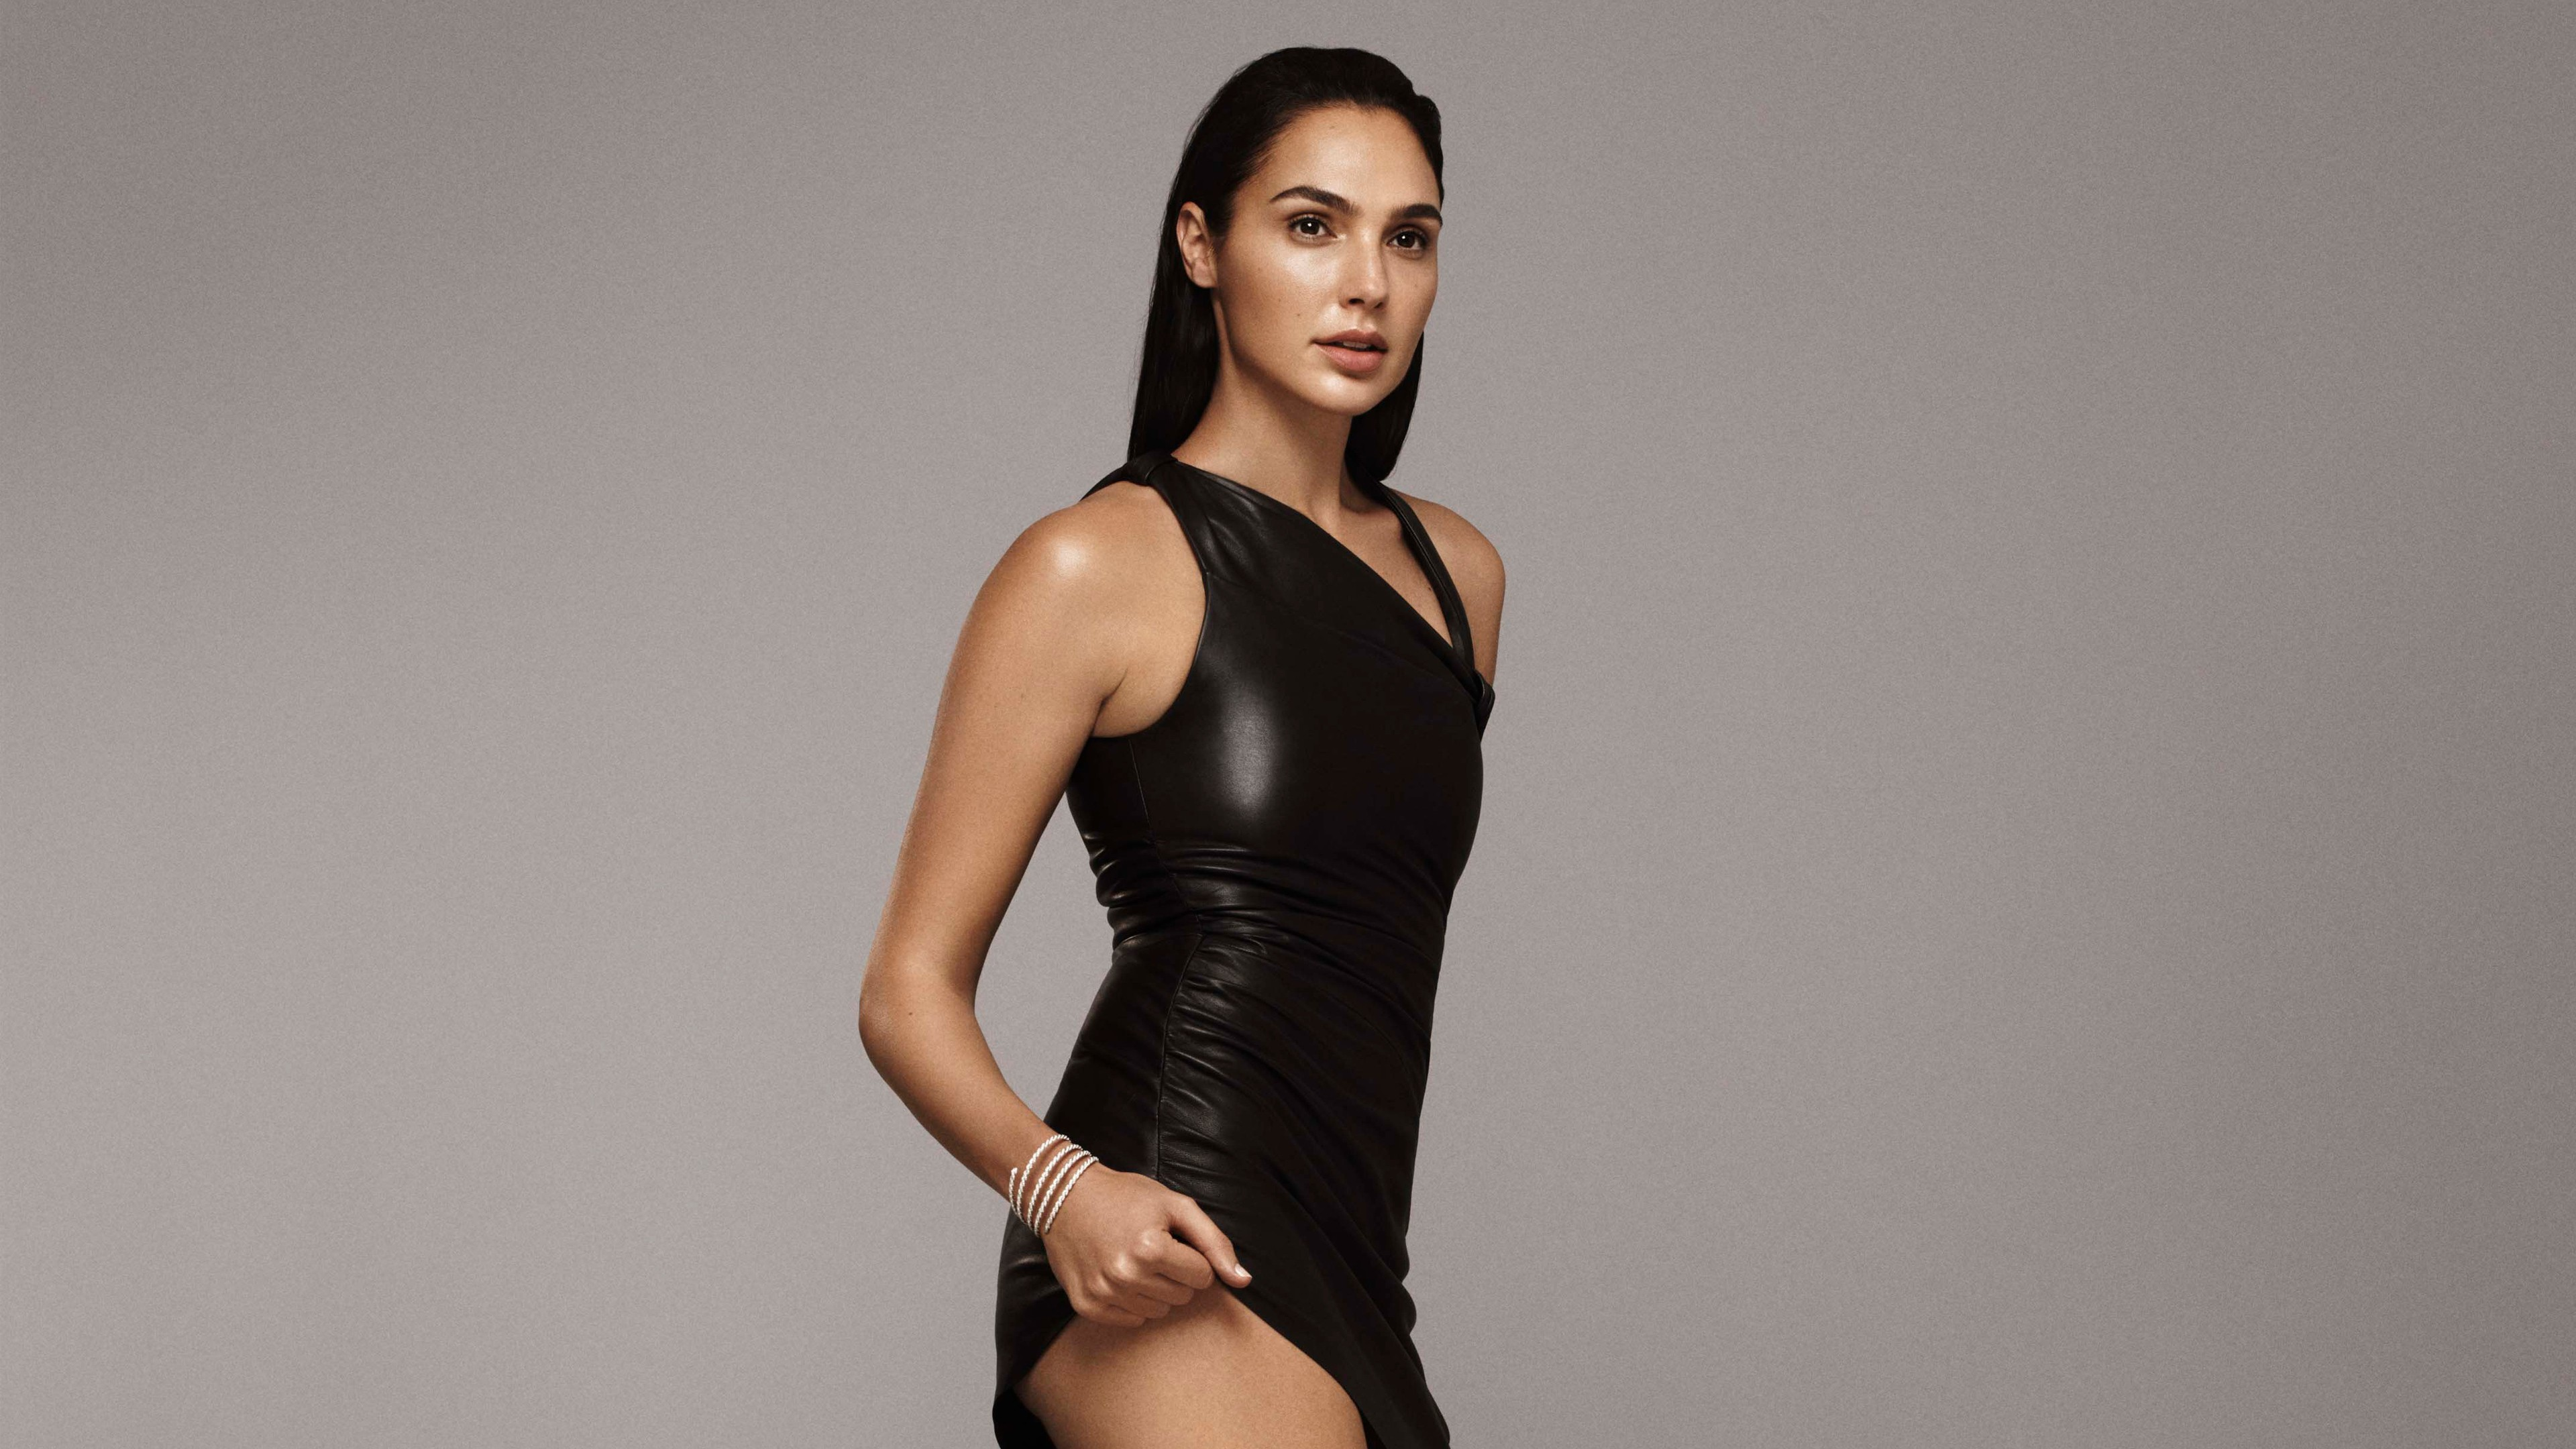 Gal Gadot Hot Elle 2017 4k 2056 Wallpapers and Stock Photos 3840x2160